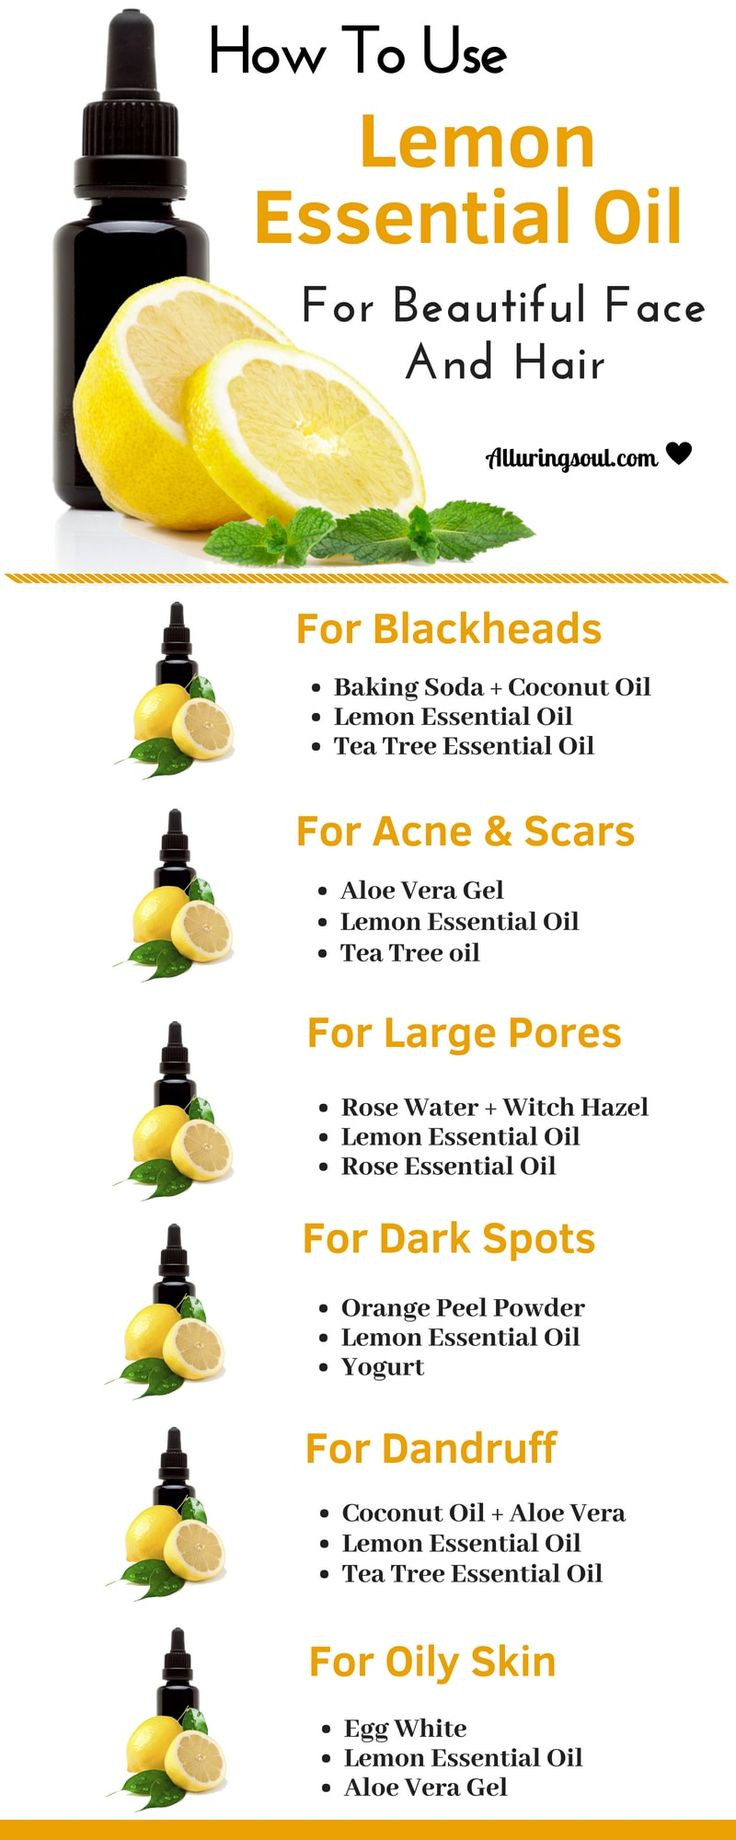 10 Benefits and Uses Of Lemon Essential Oil For Skin & Hair